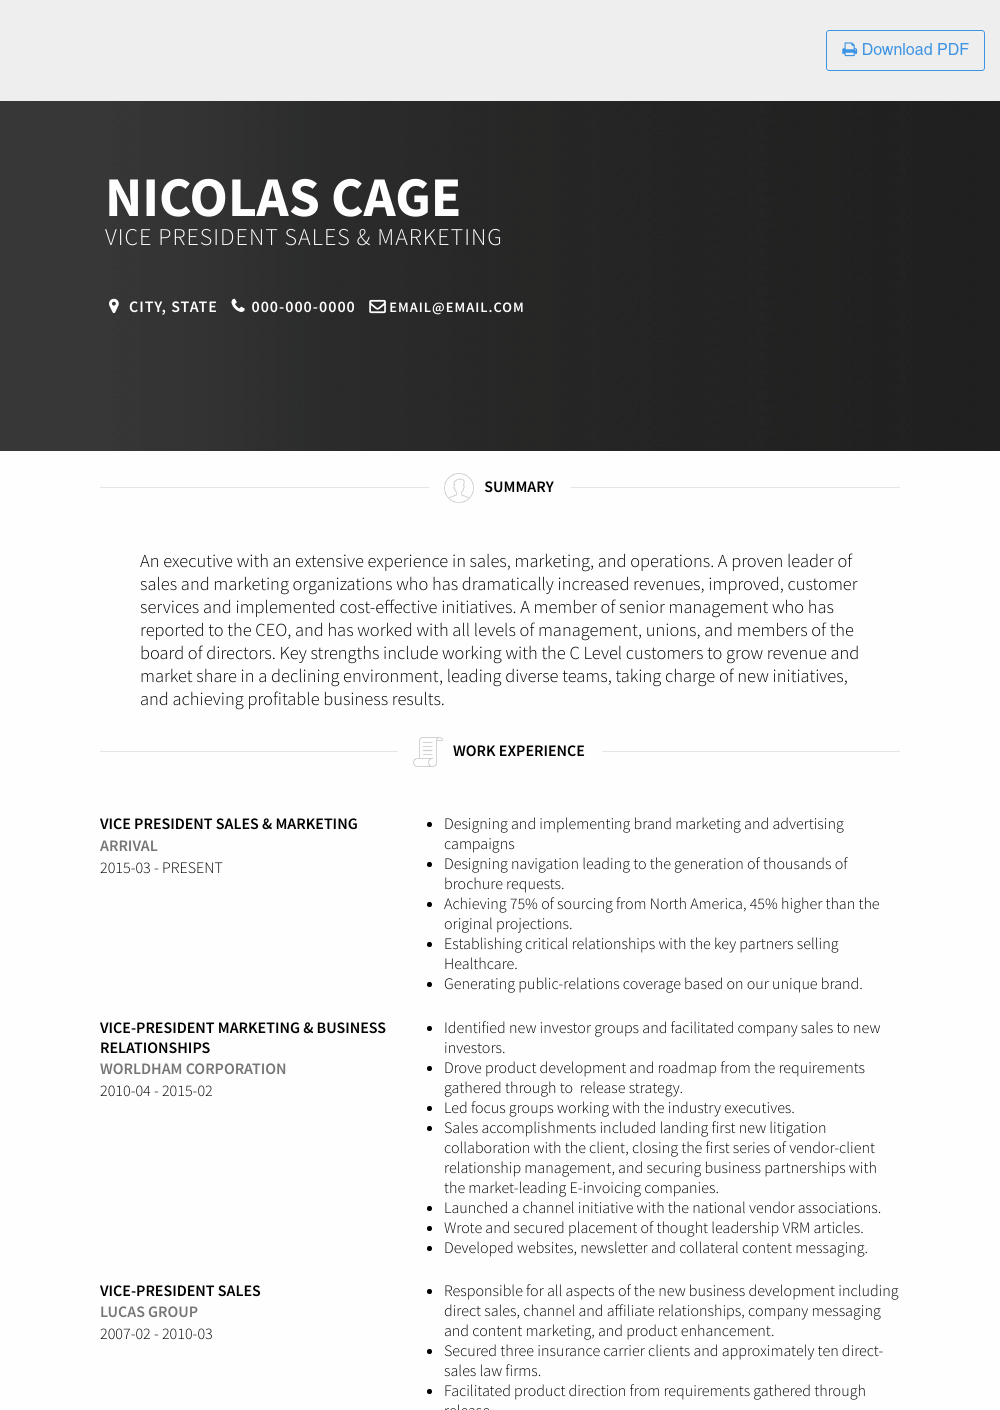 Vice President Sales & Marketing Resume Sample and Template